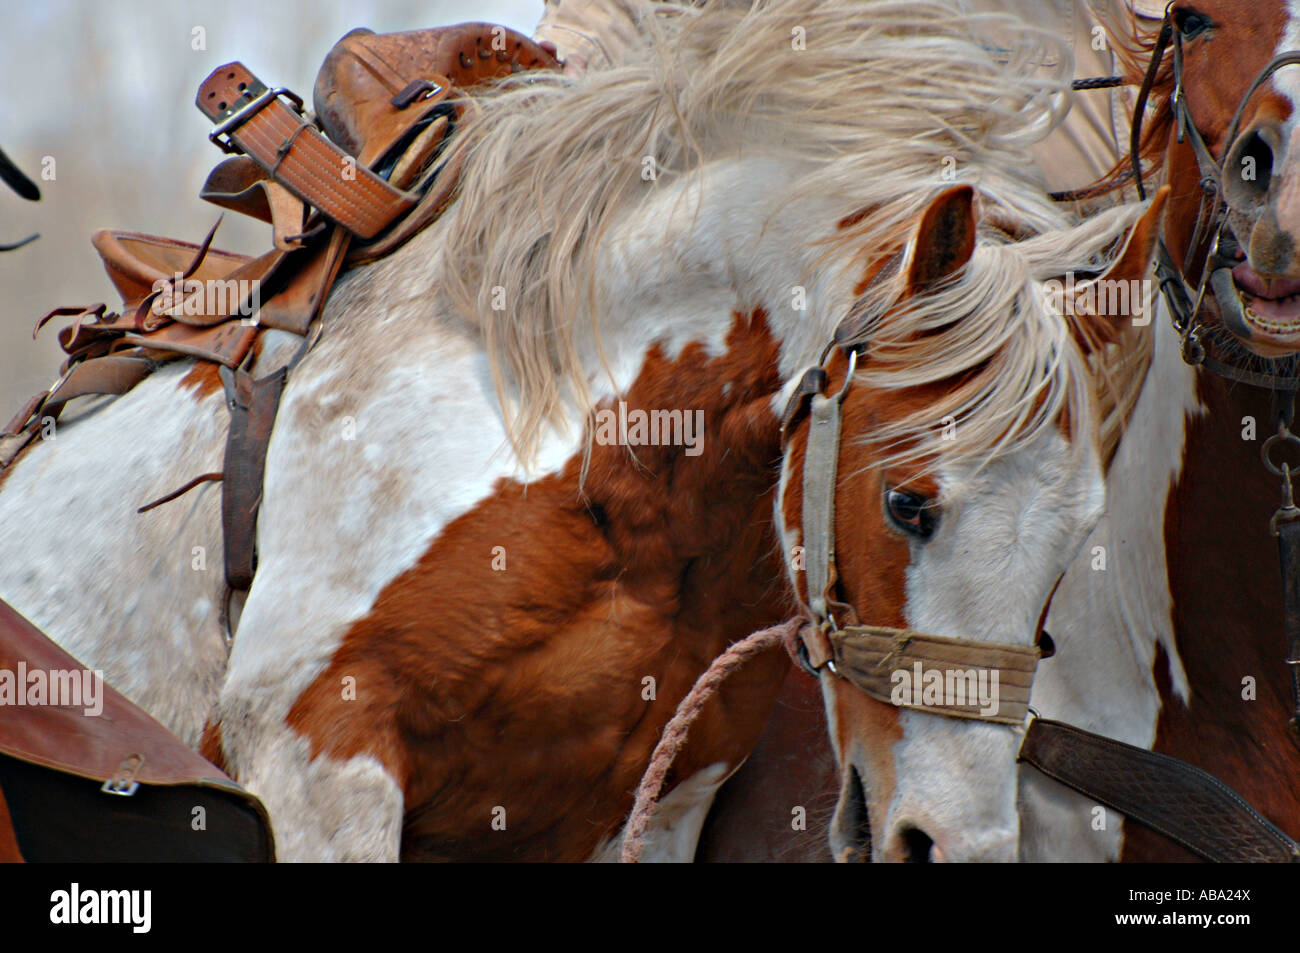 An untaimed Saddle Bronc Bucking at a rodeo competition. - Stock Image